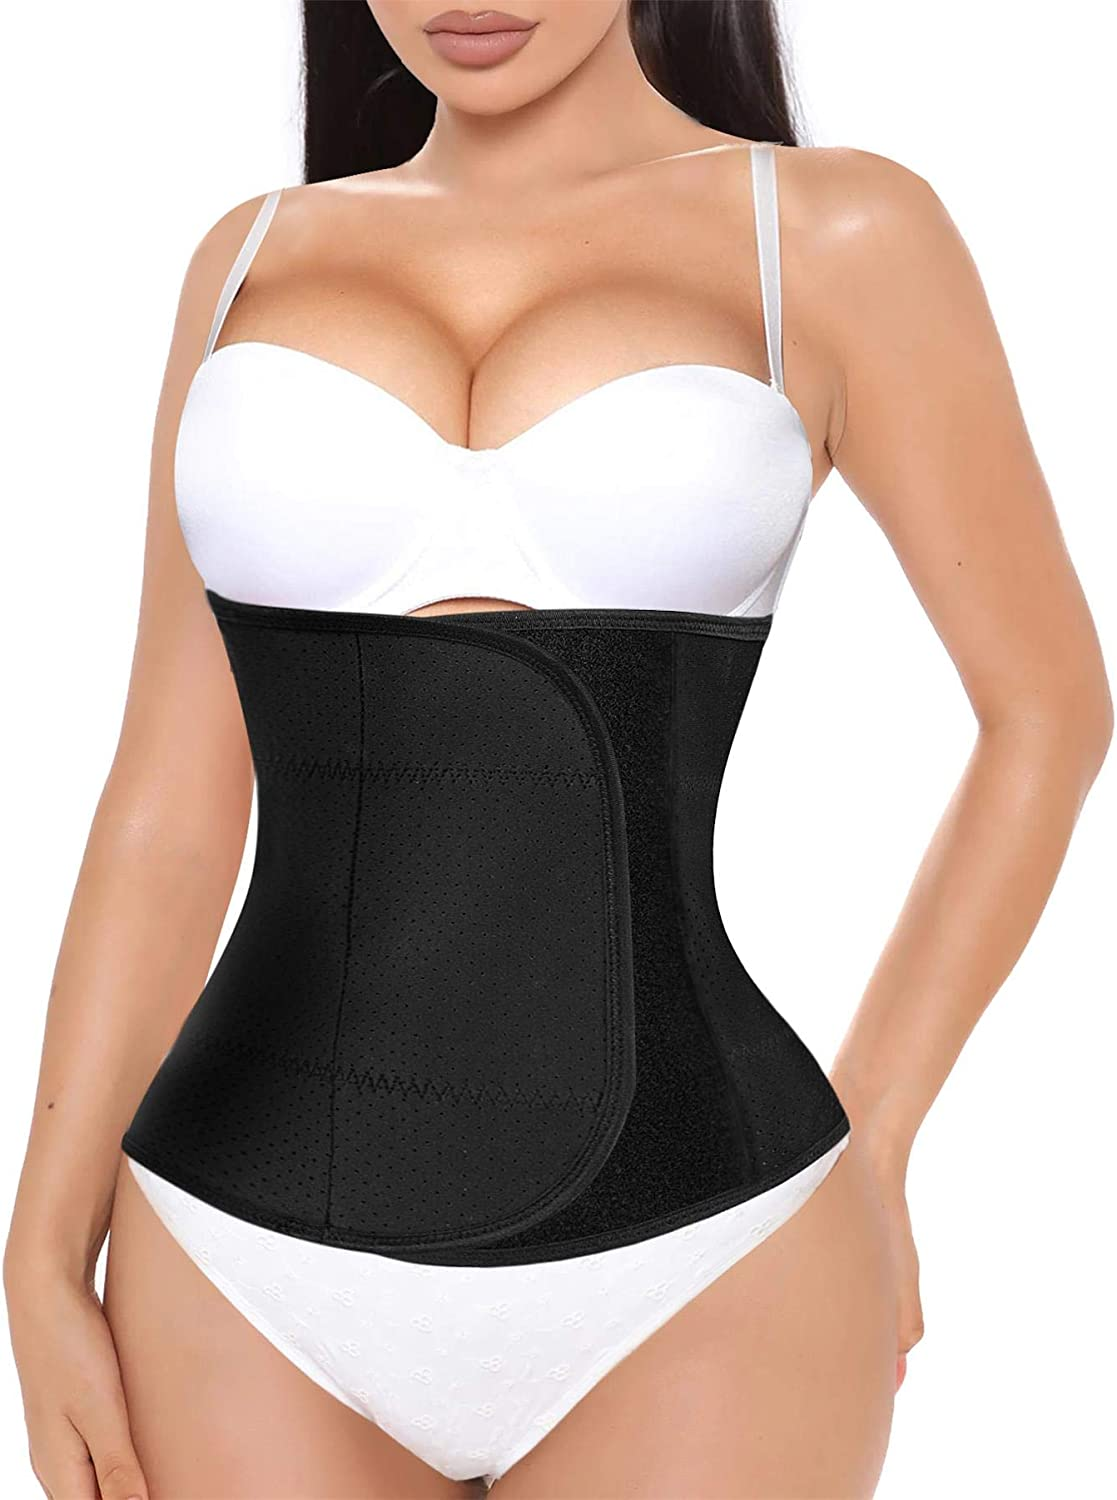 BRABIC Postpartum Belly Band Chicago Mall Wrap shop Slimming Girdle Support Waist